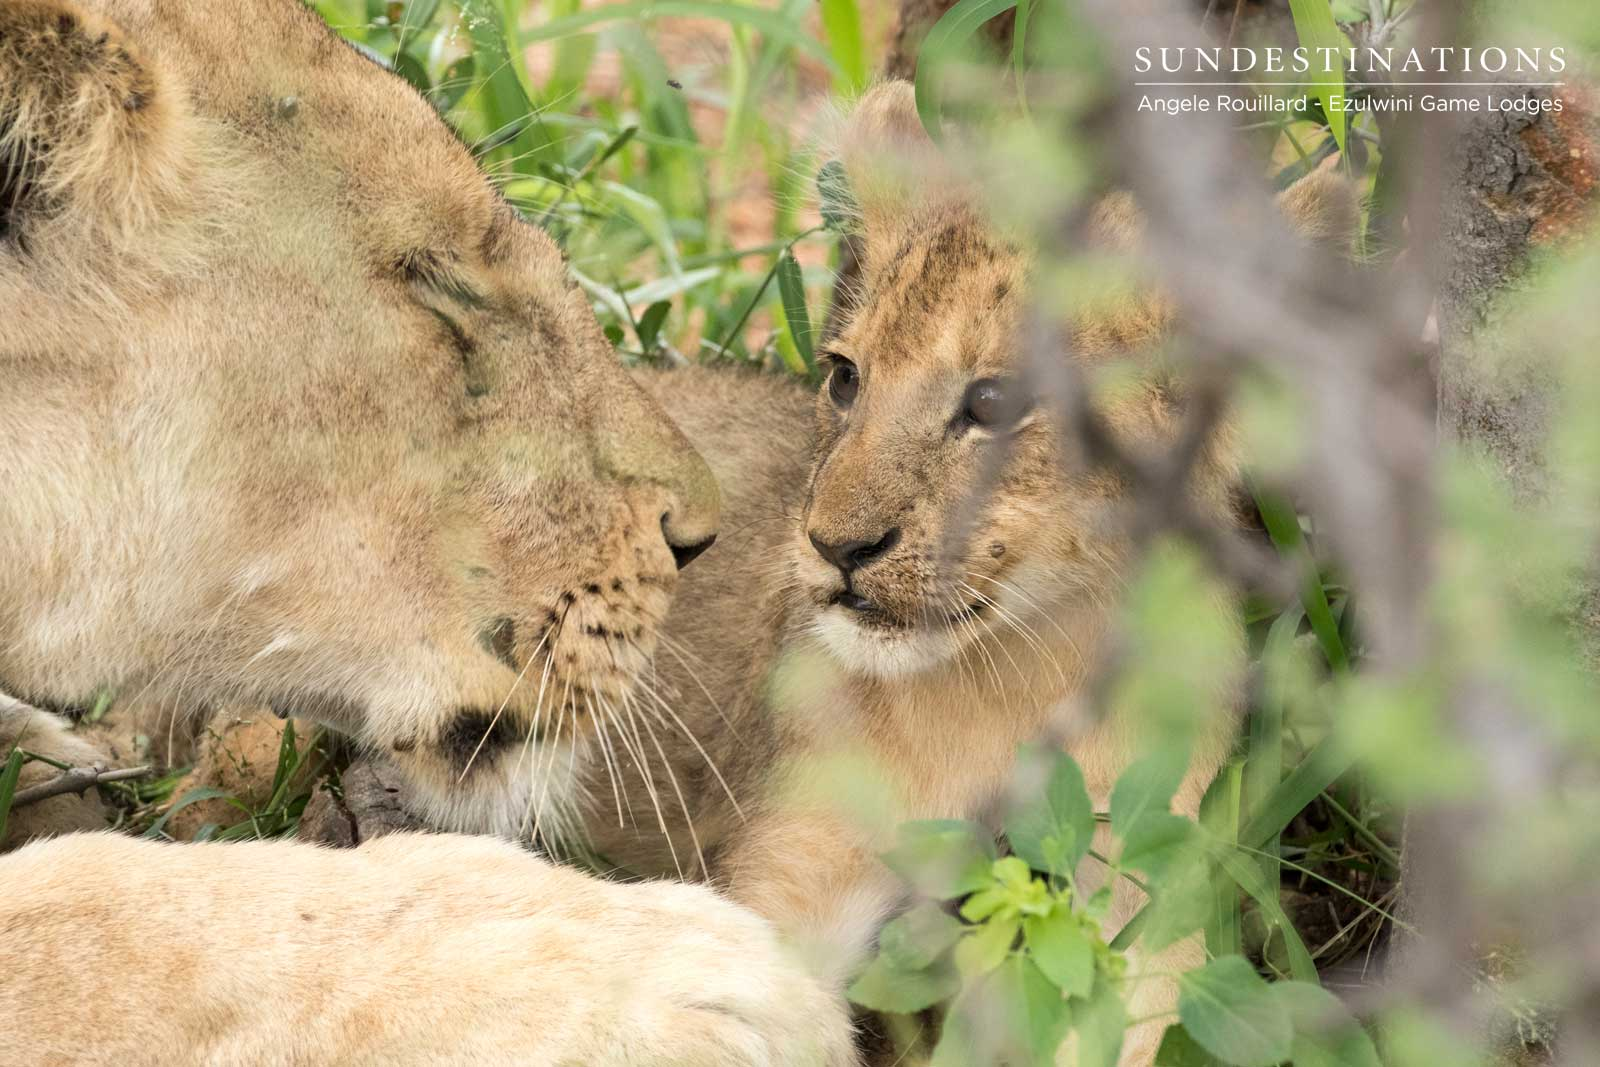 Ezulwini Lion Cubs in the Balule Nature Reserve